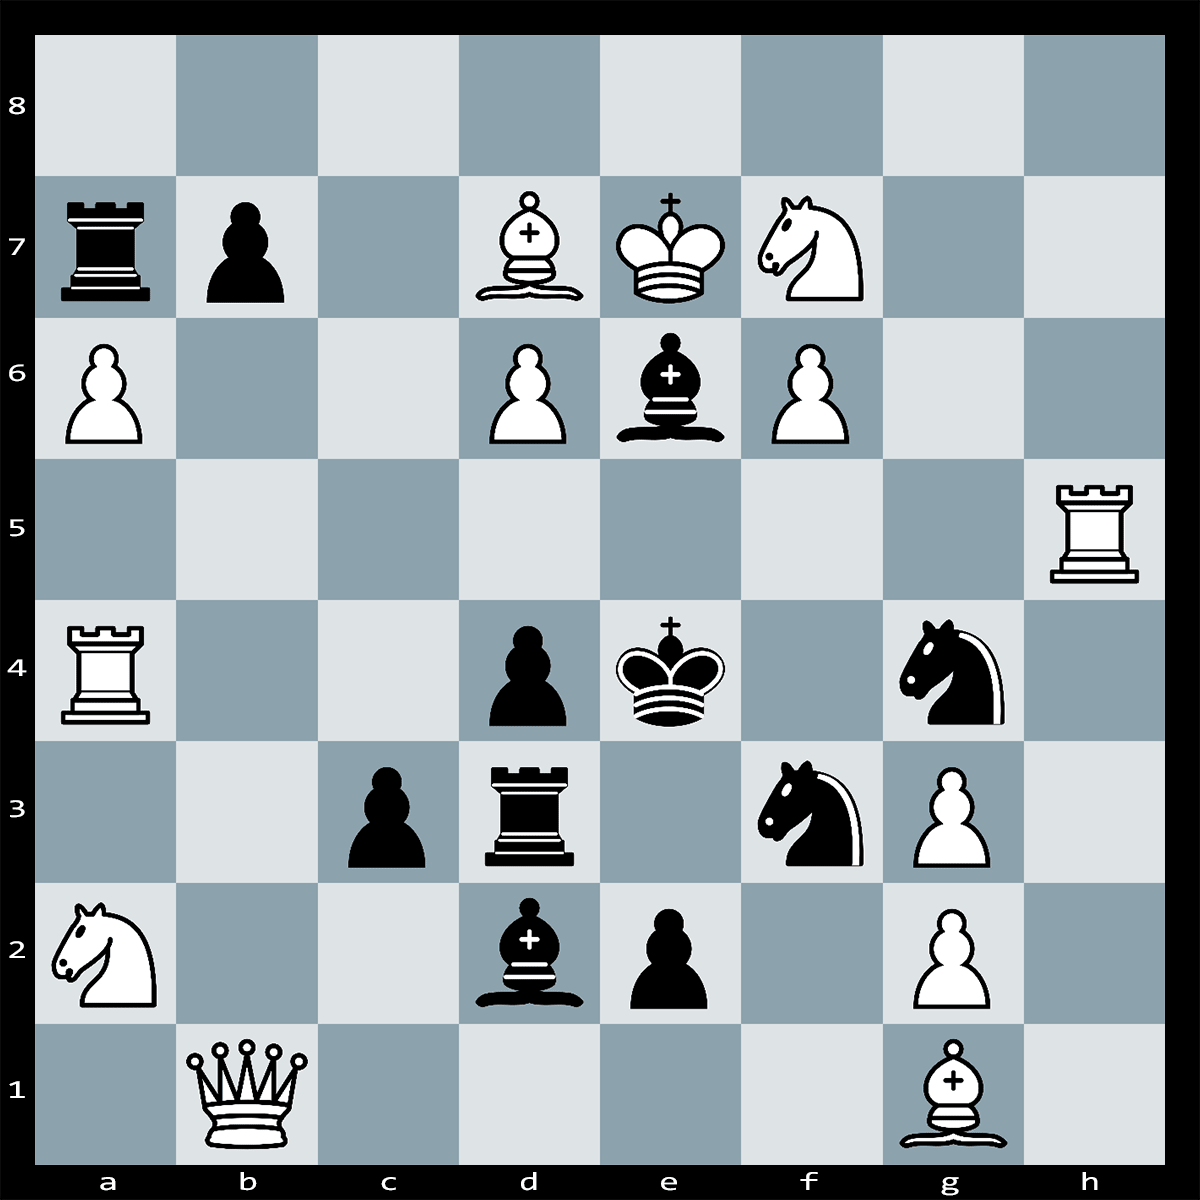 Mate in 3 Moves, White to Play - Chess Puzzle #34